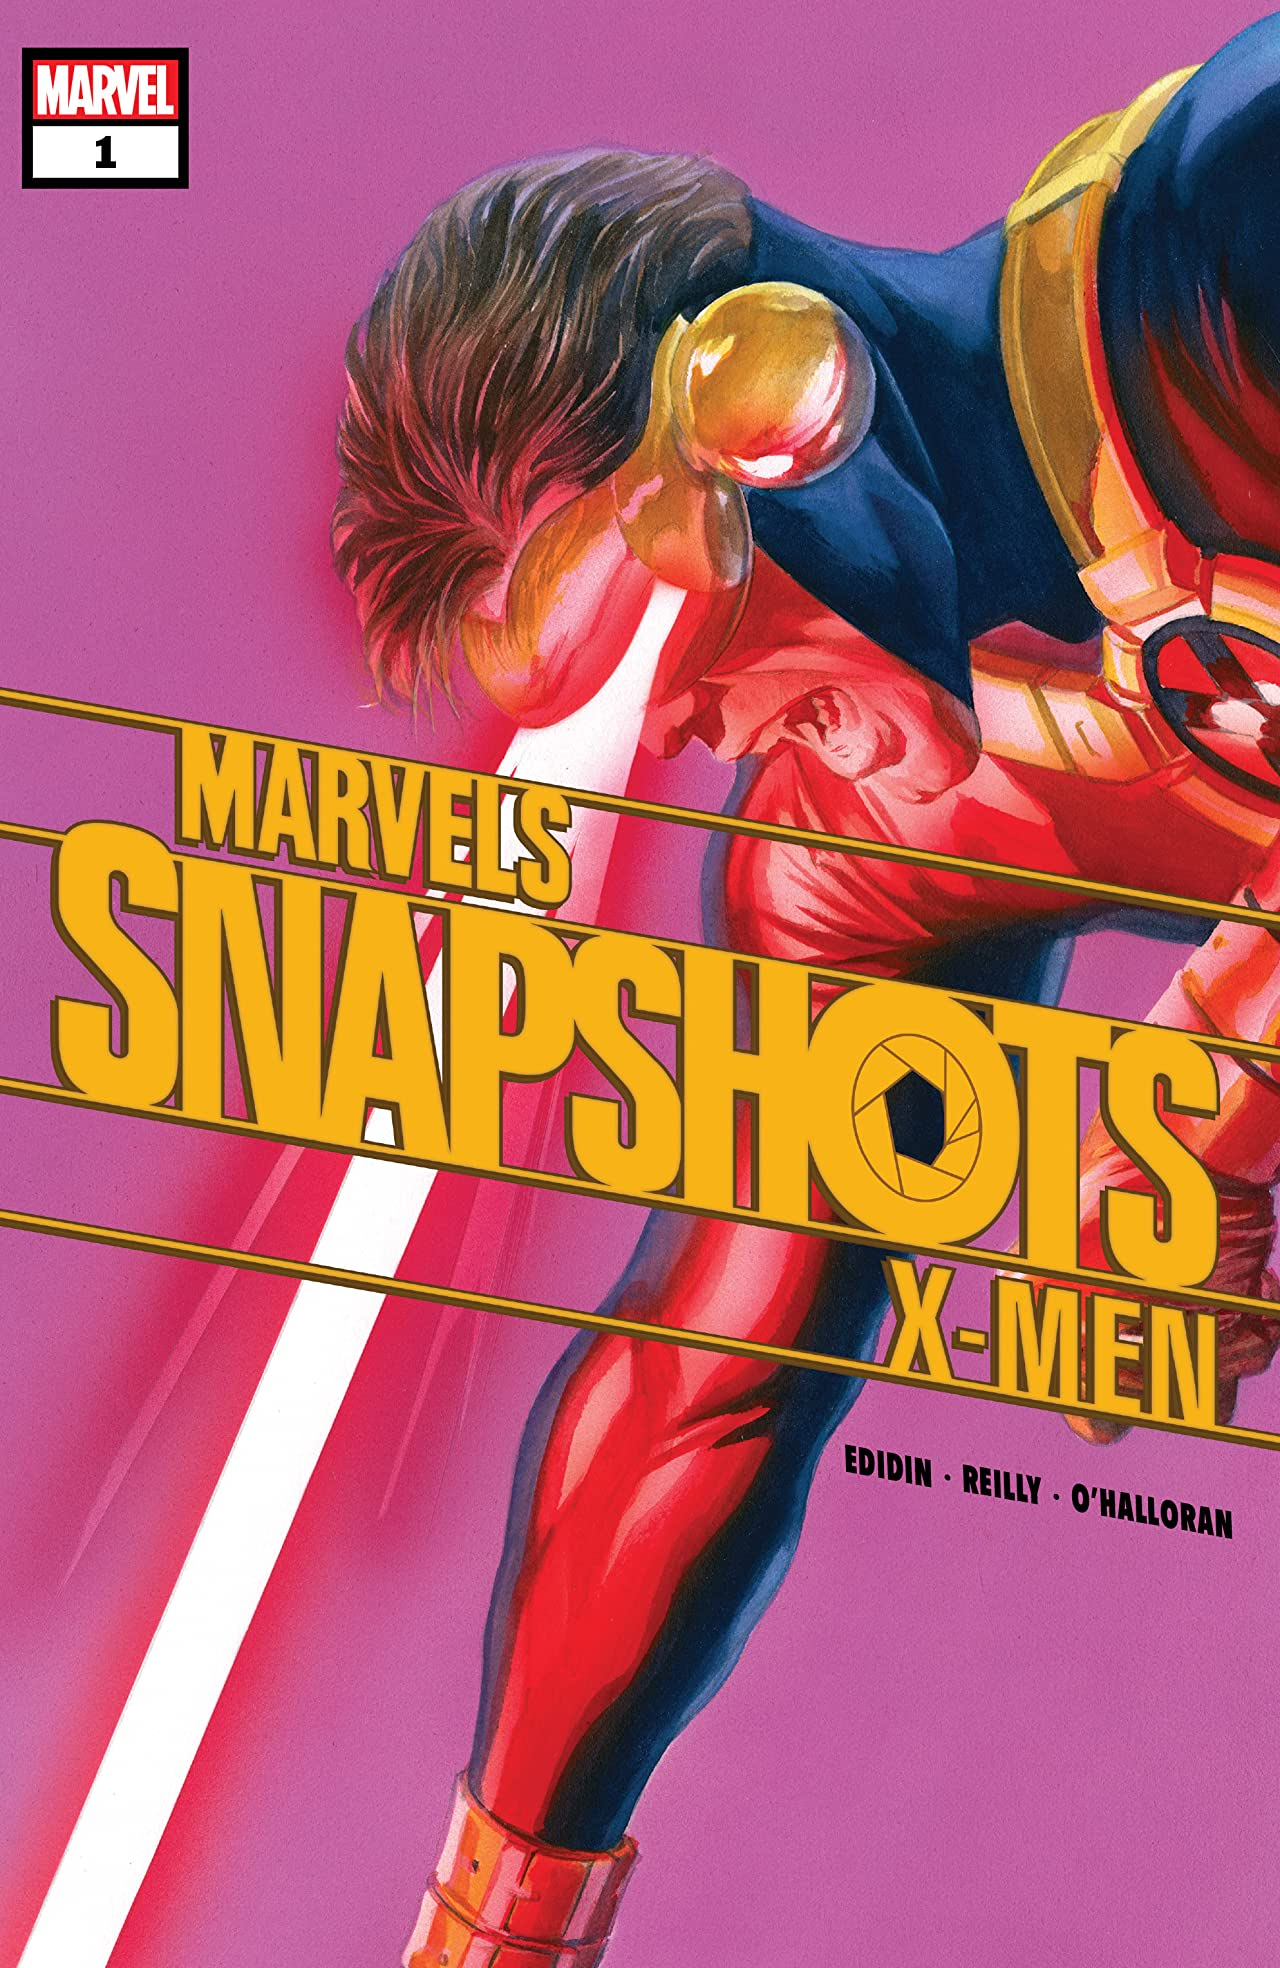 X-Men: Marvels Snapshot (2020) #1